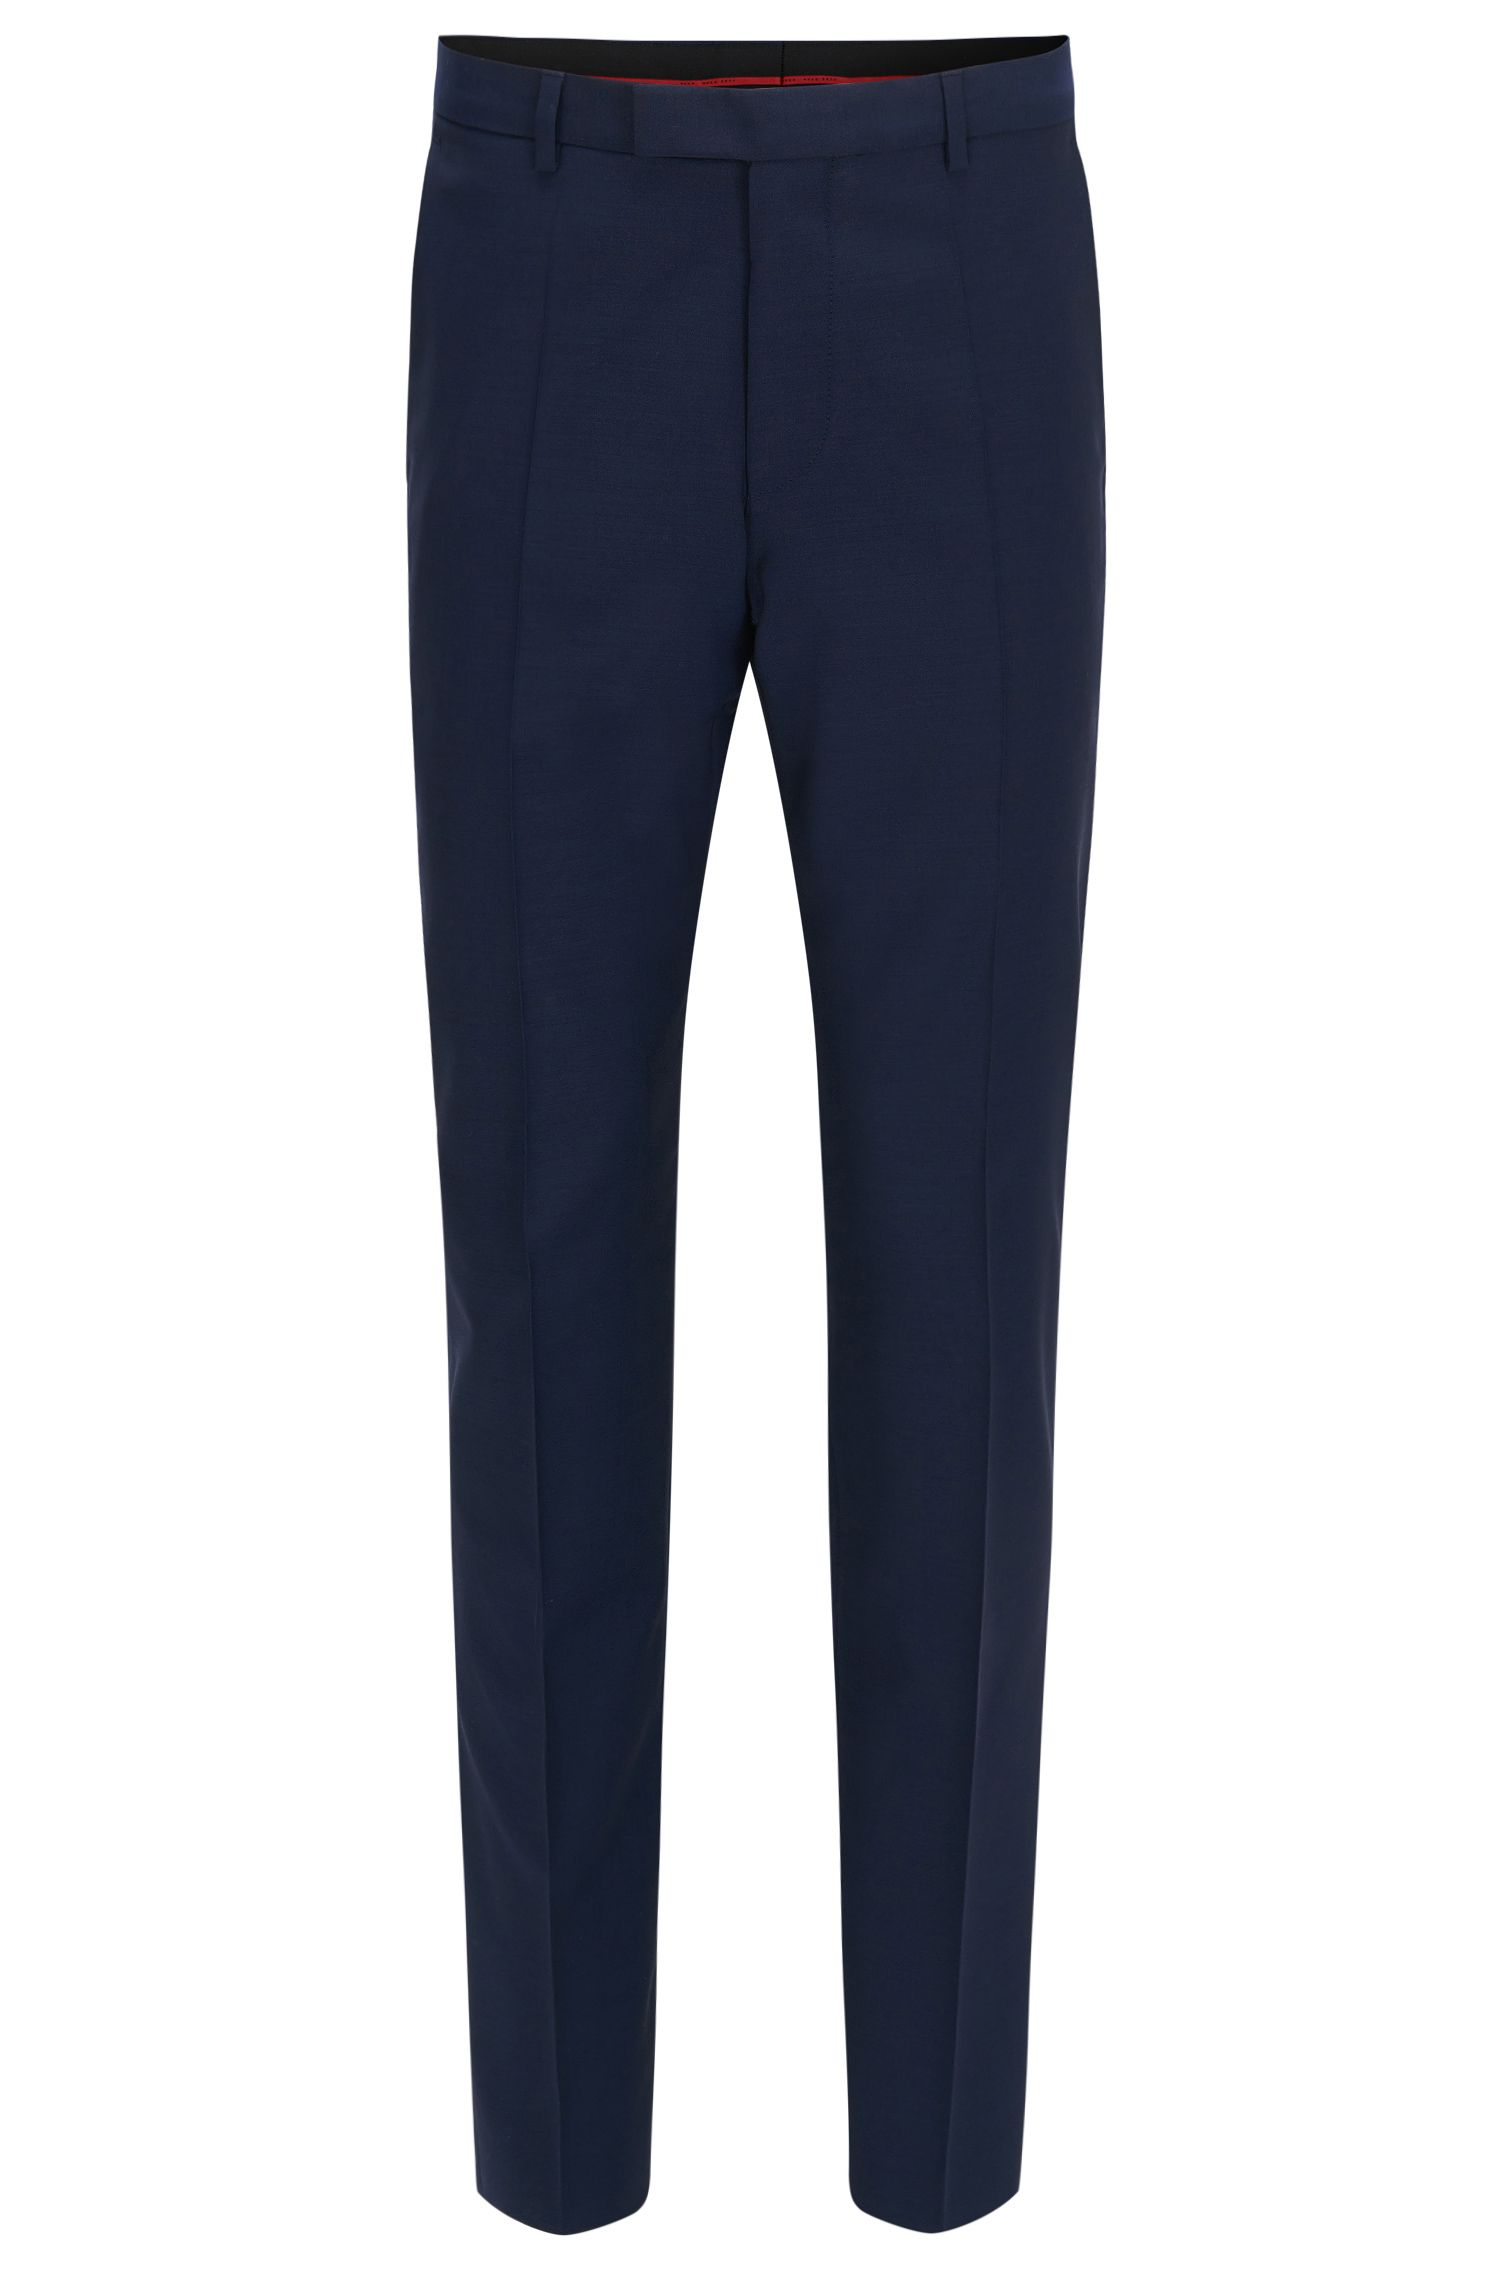 Pantalon Regular Fit en laine vierge, Bleu